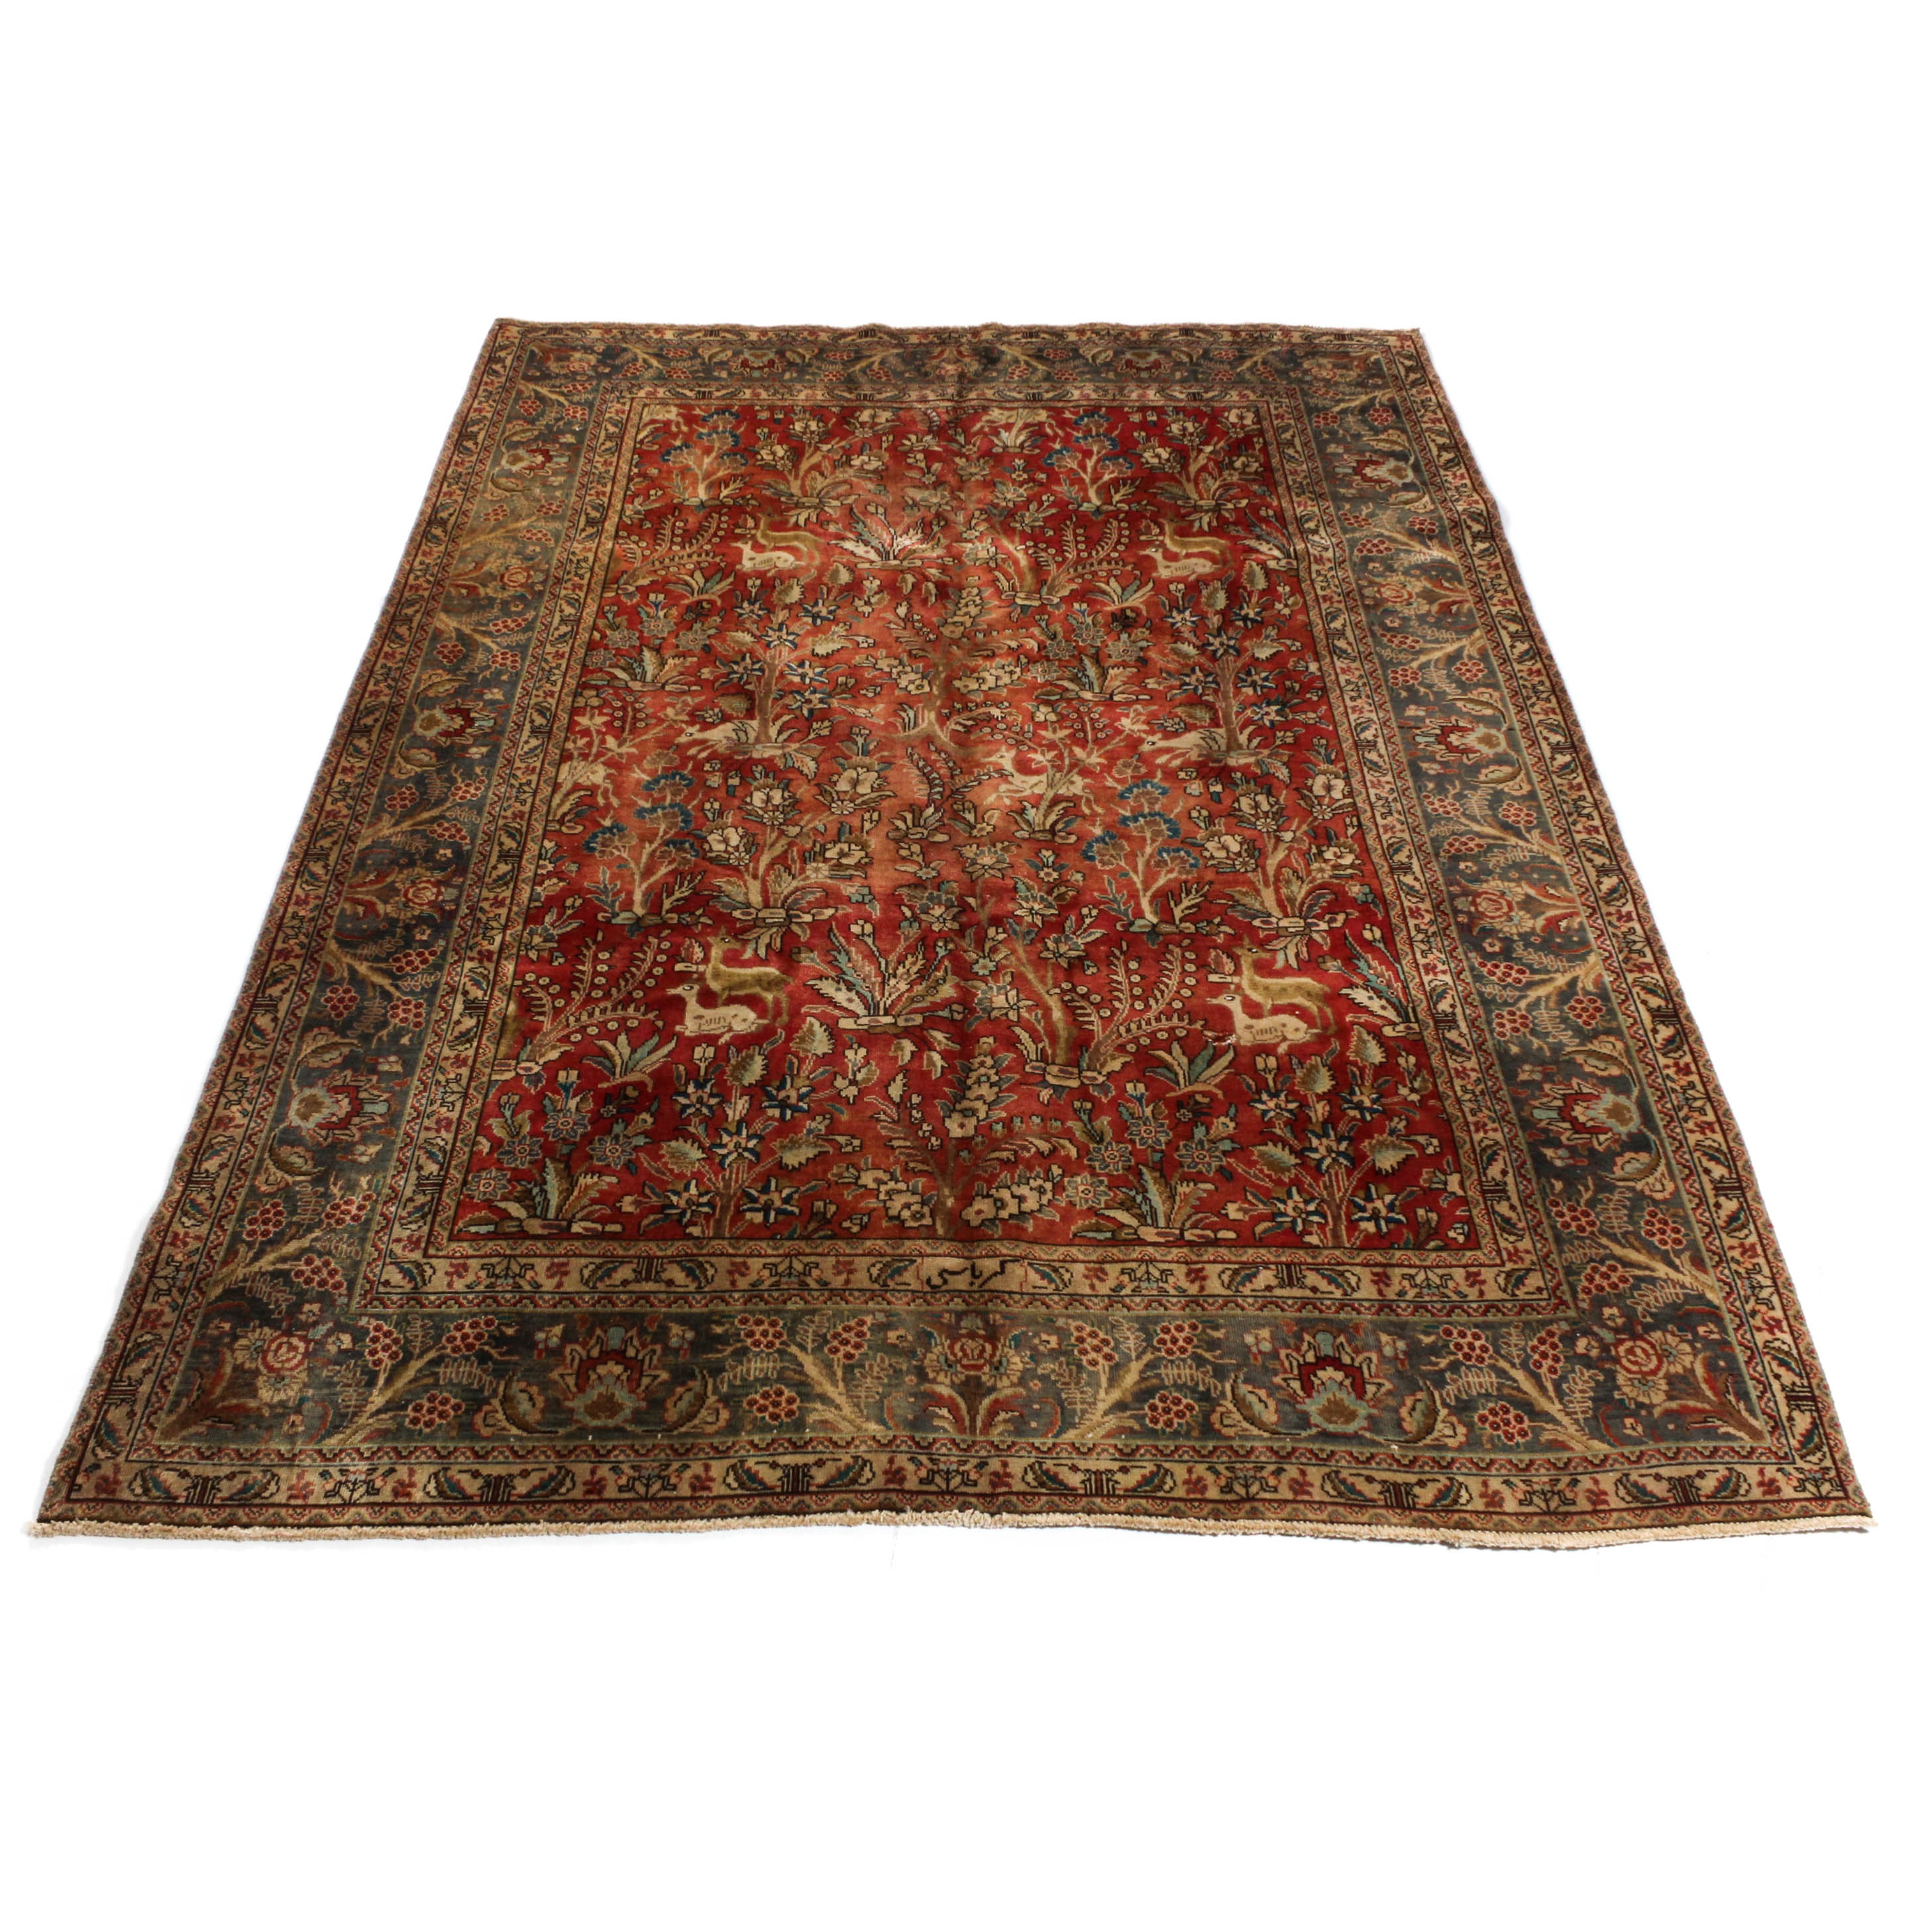 Semi-Antique Hand-Knotted Persian Hunting Qum Room Size Rug